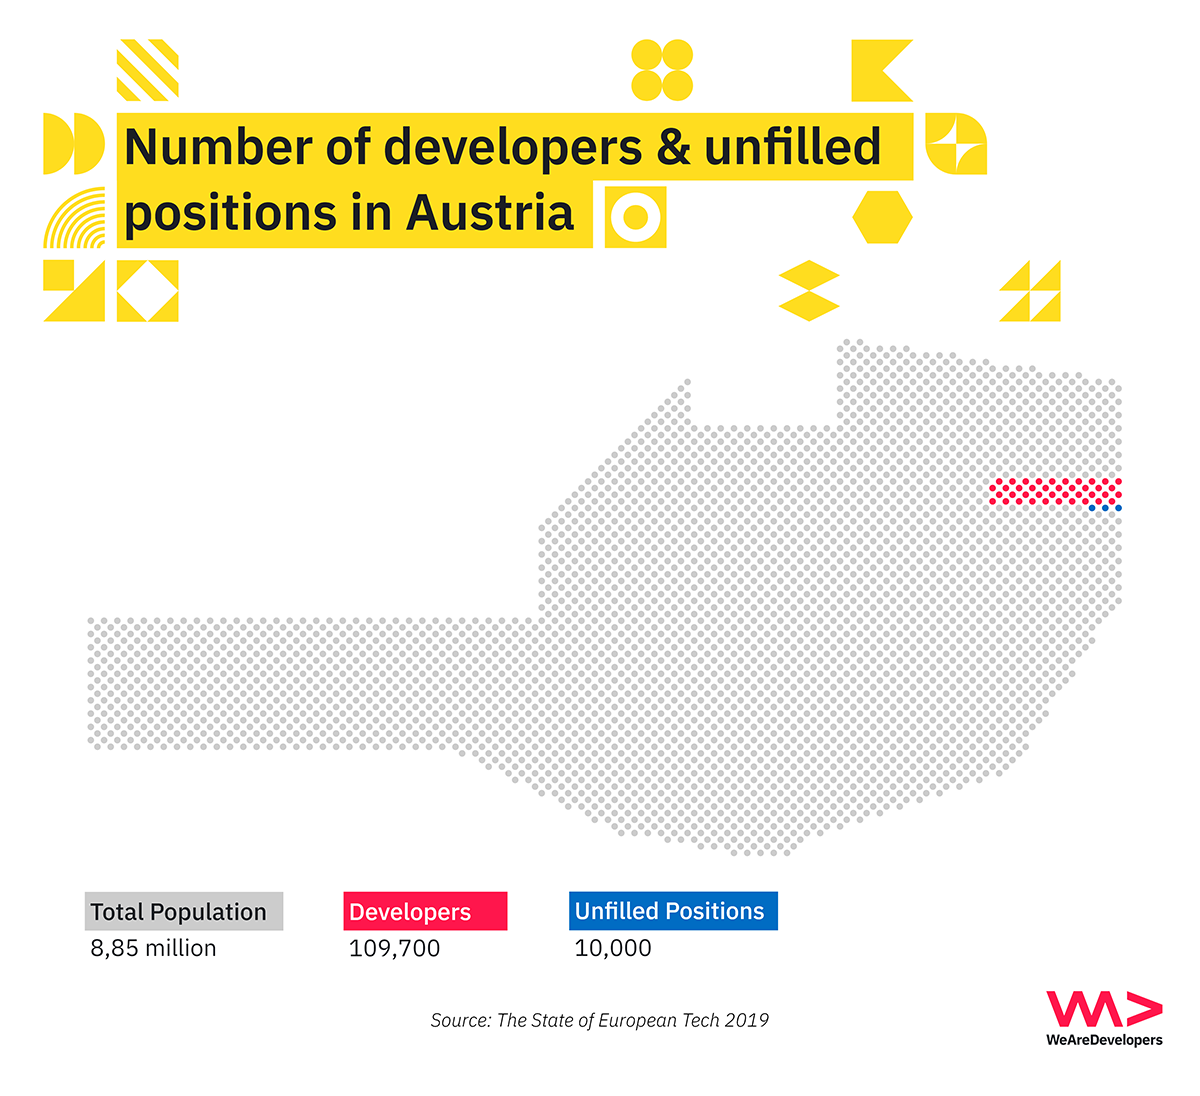 Number of software developers in Austria and unfilled positions